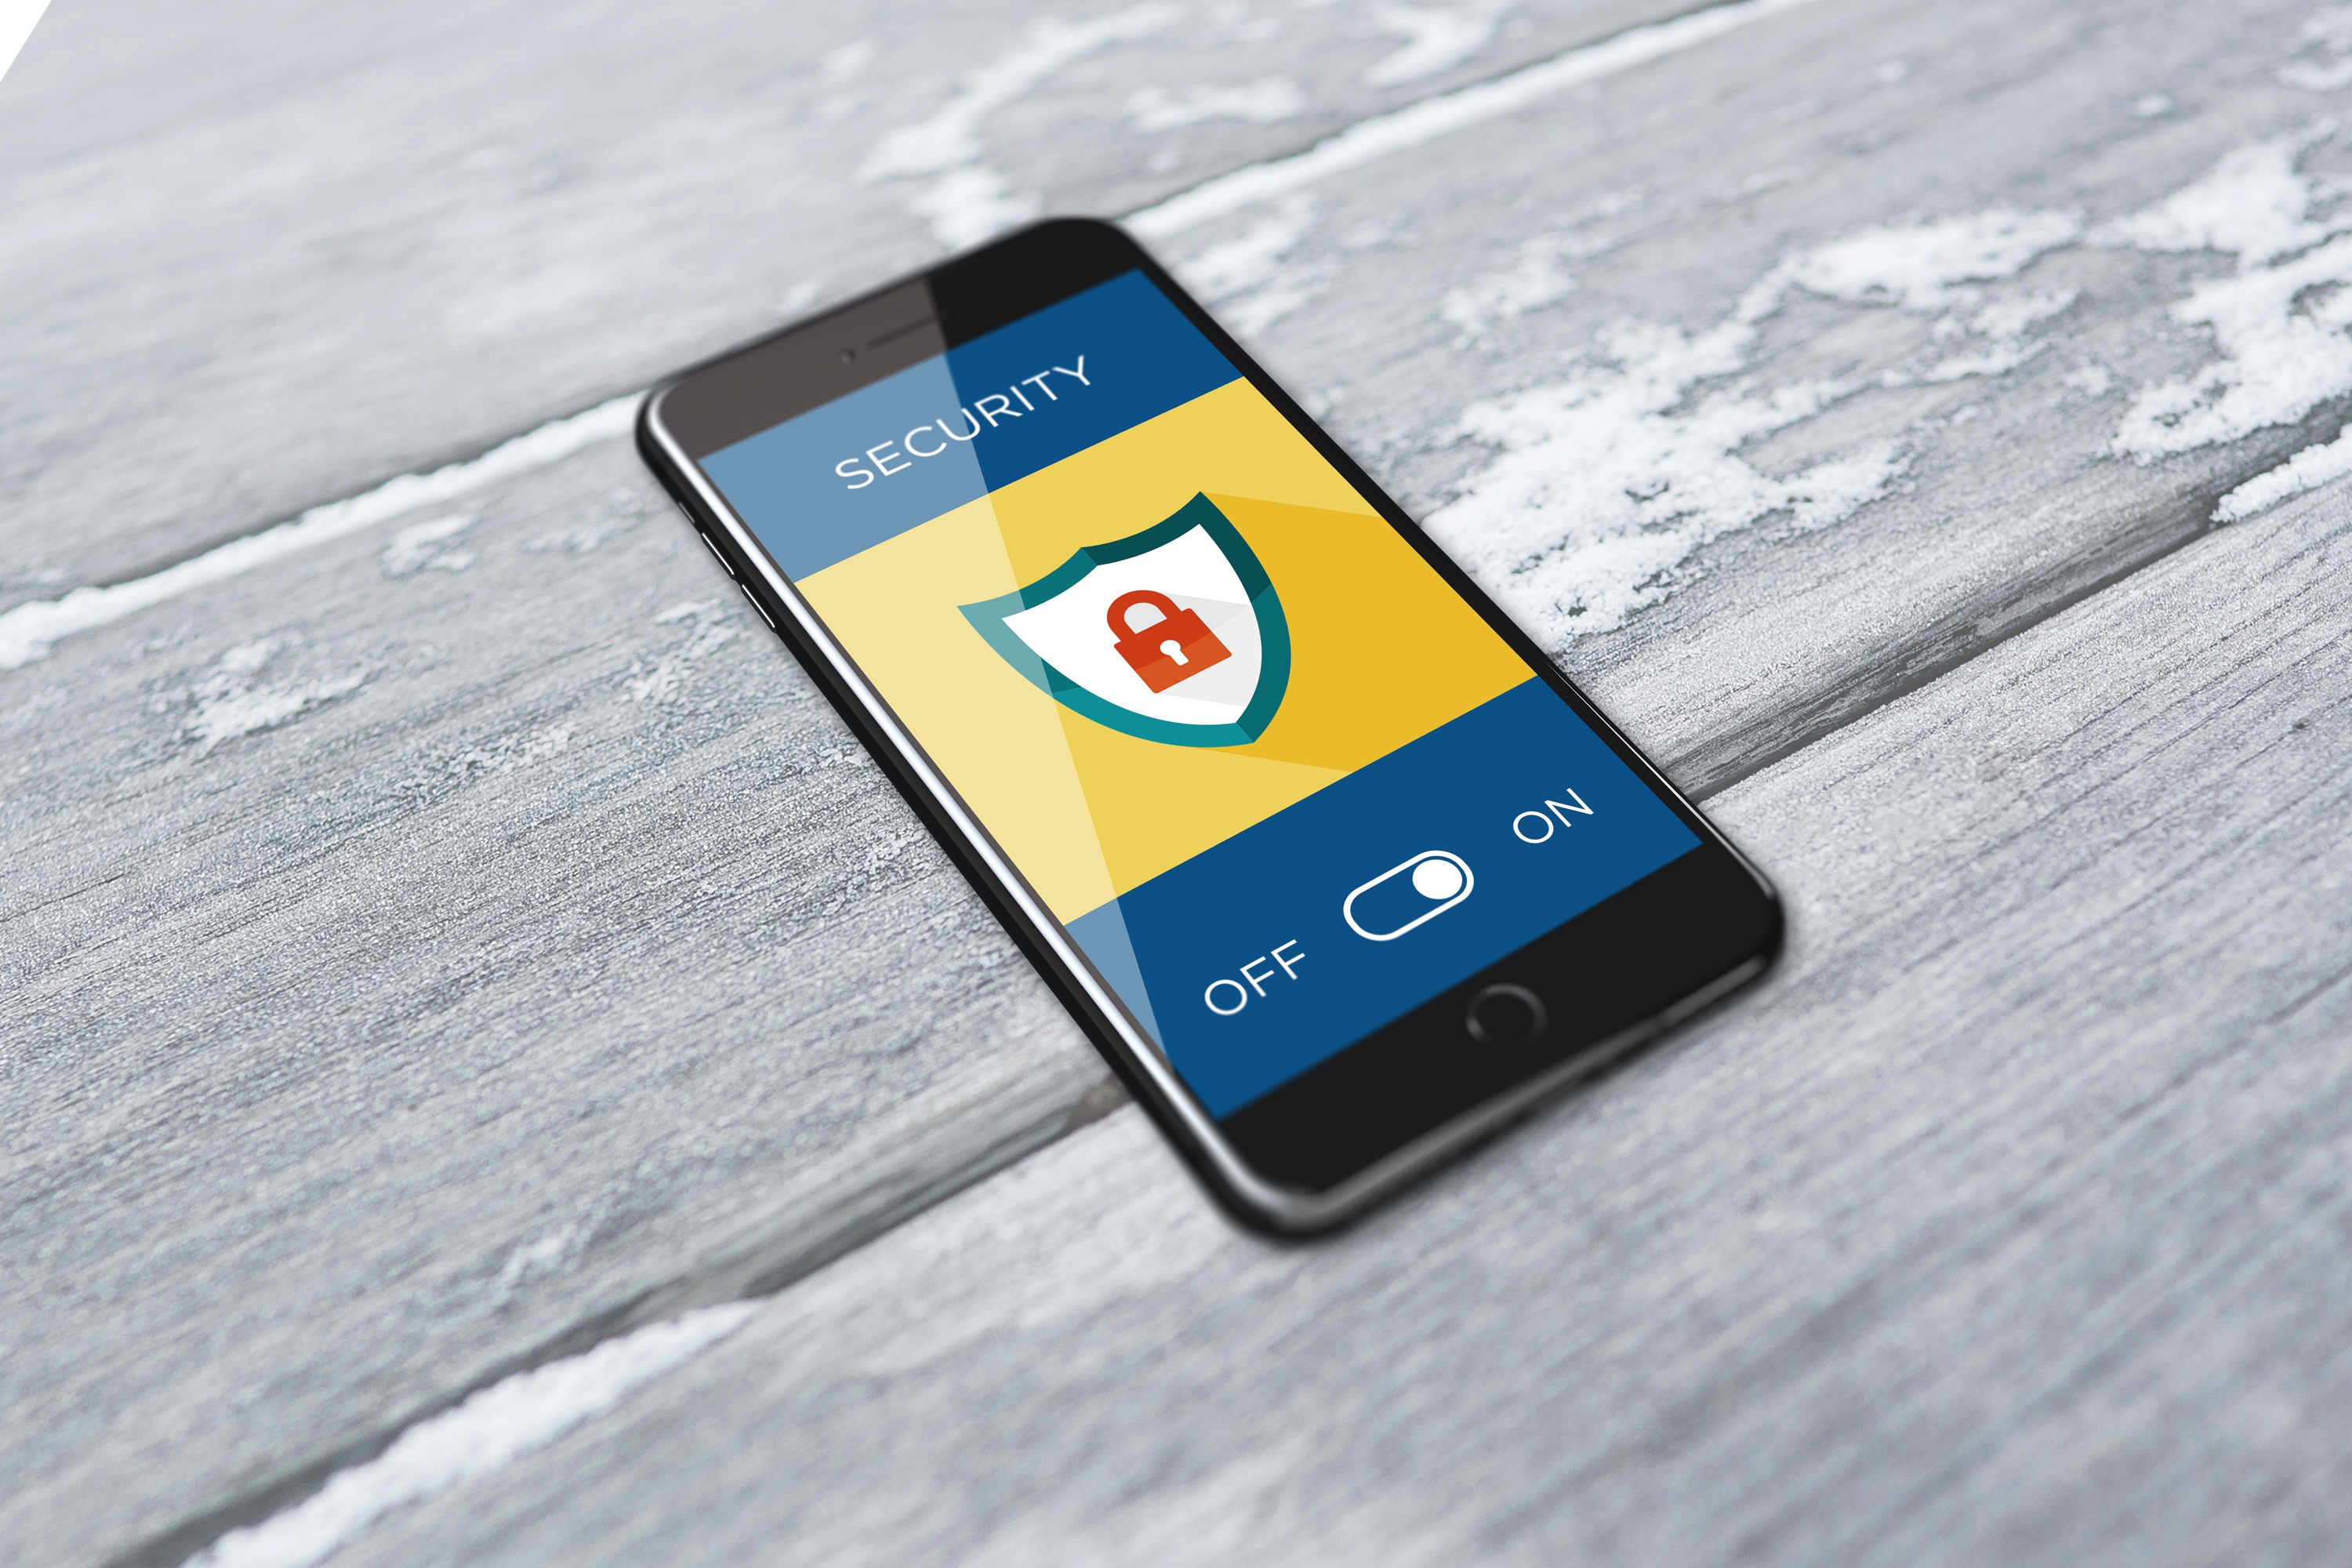 Canva - Smartphone Showing Activated Security System